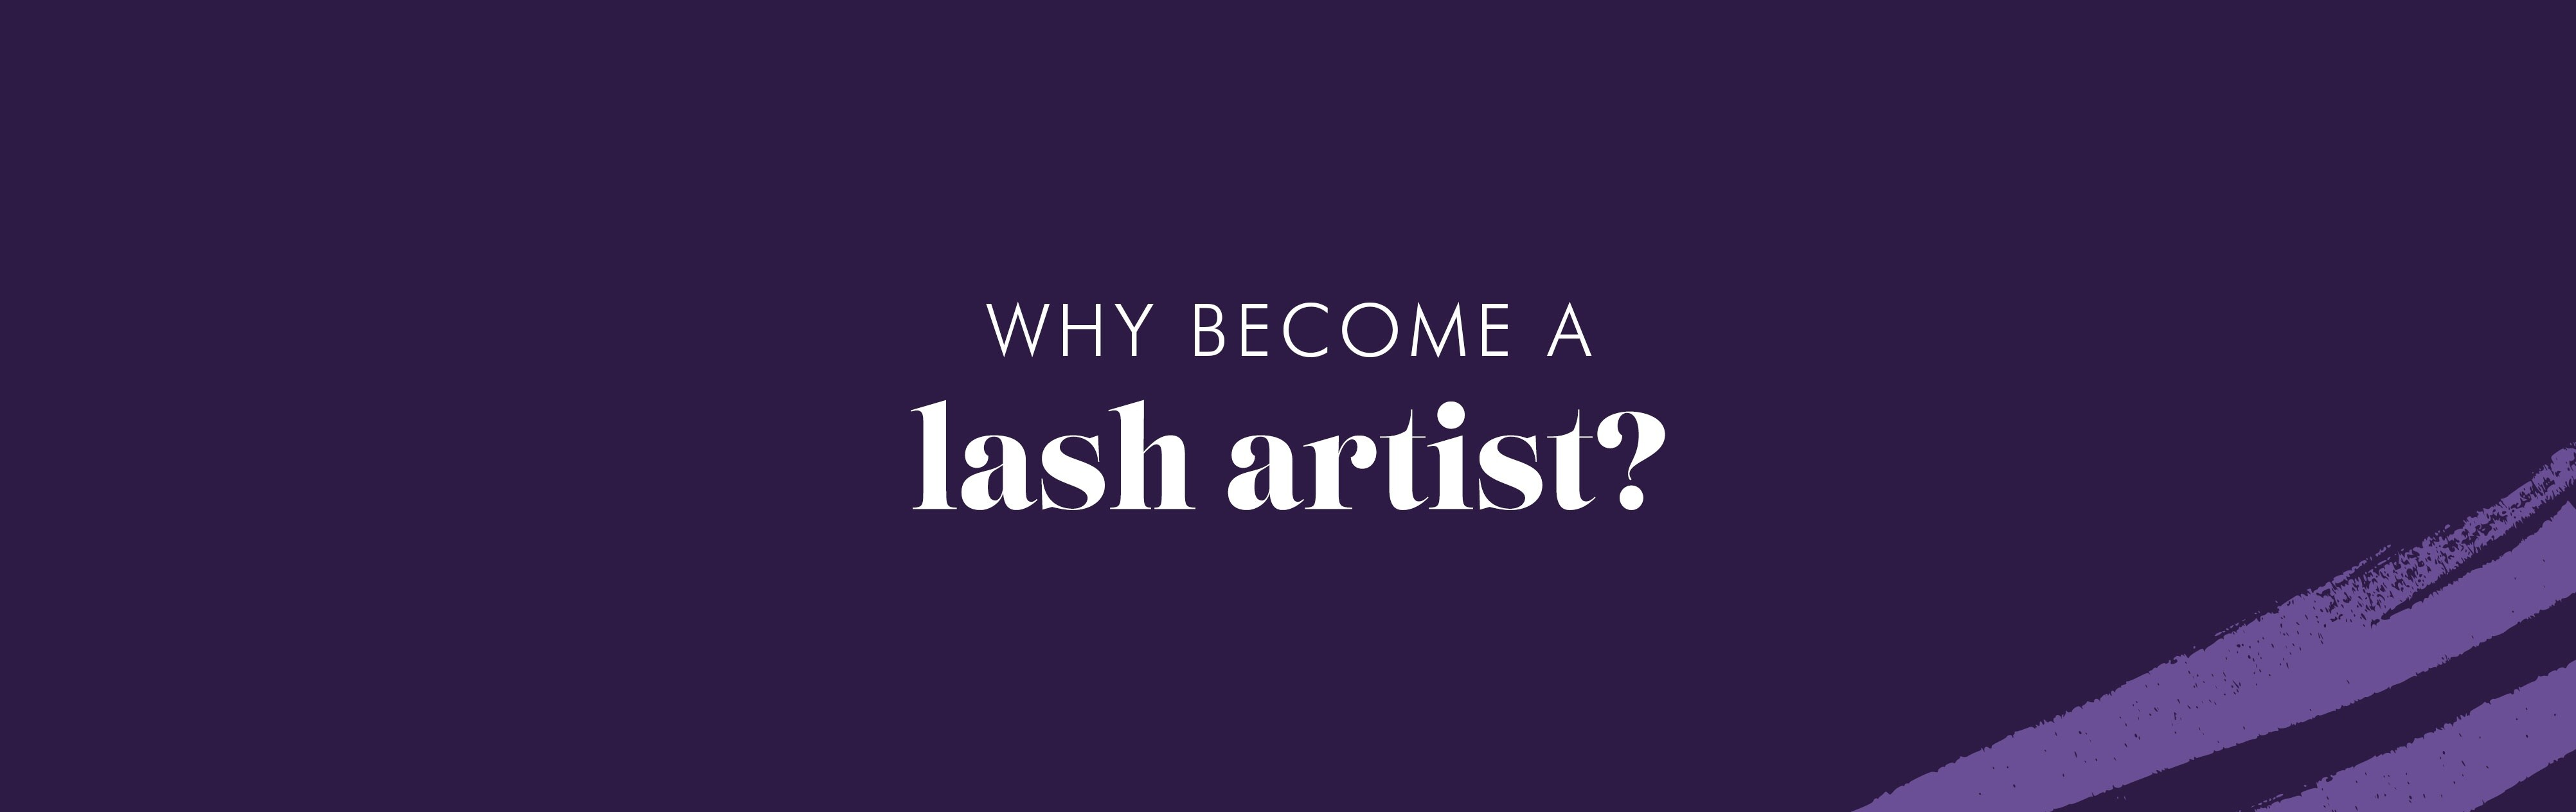 Why become a lash artist?